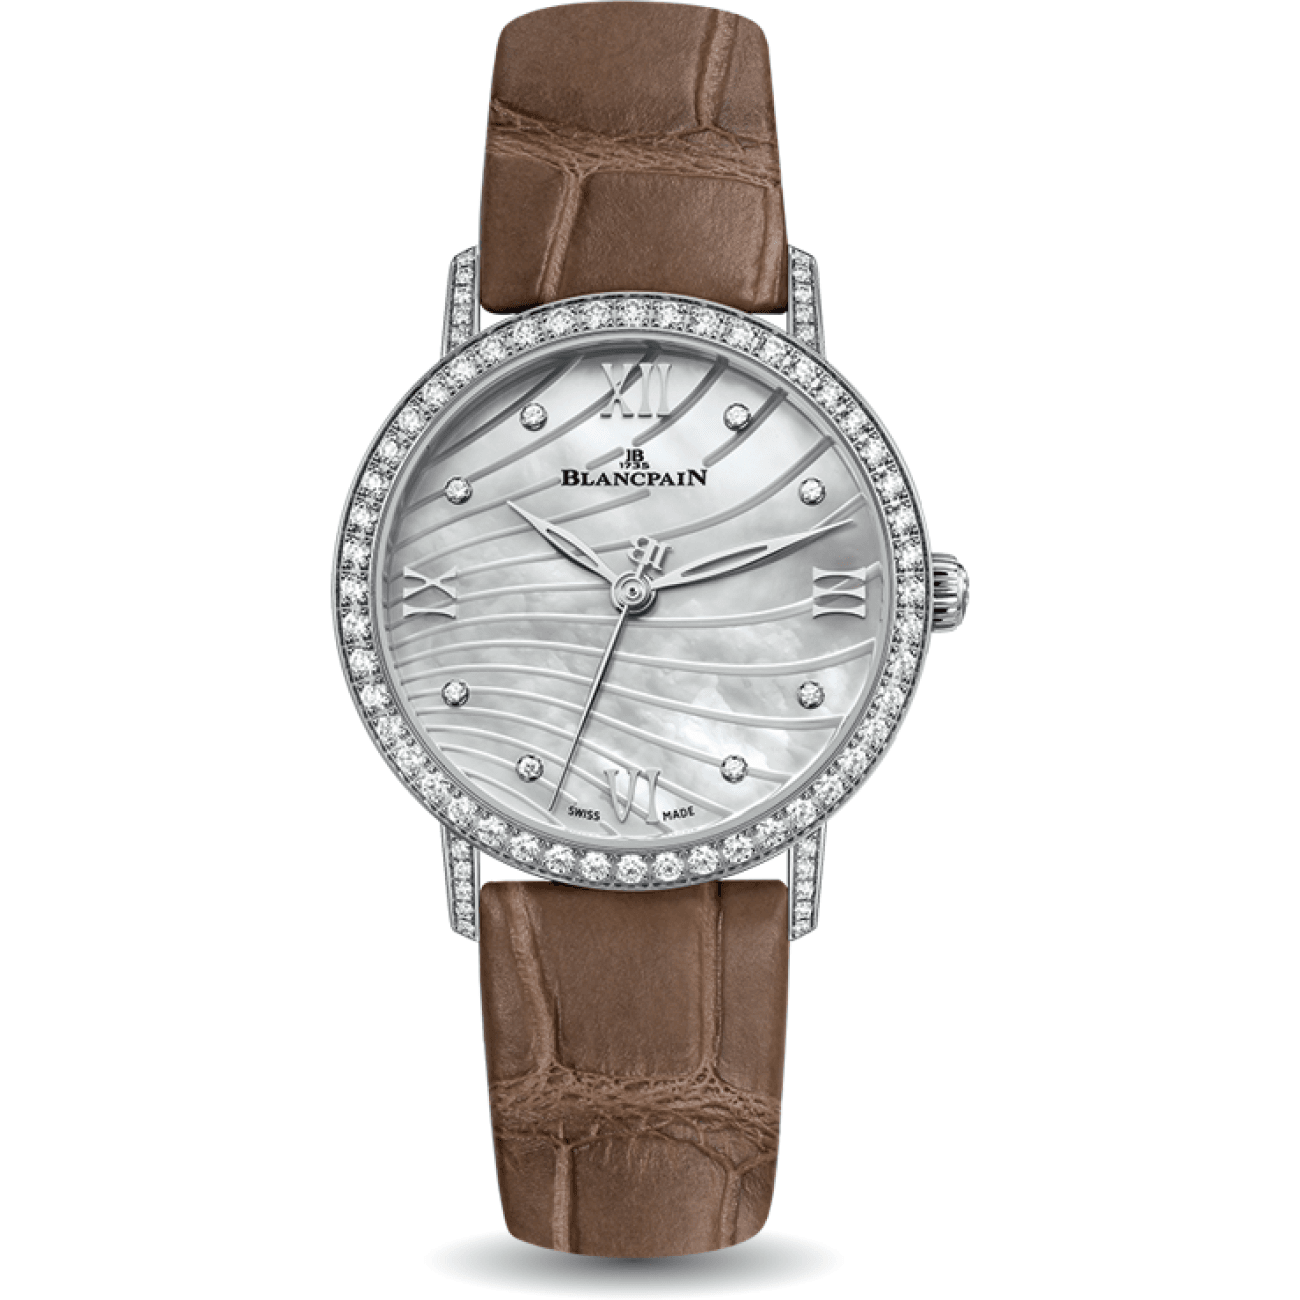 Blancpain Watches - Blancpain Ultra - slim Wave Mop Dial | Manfredi Jewels